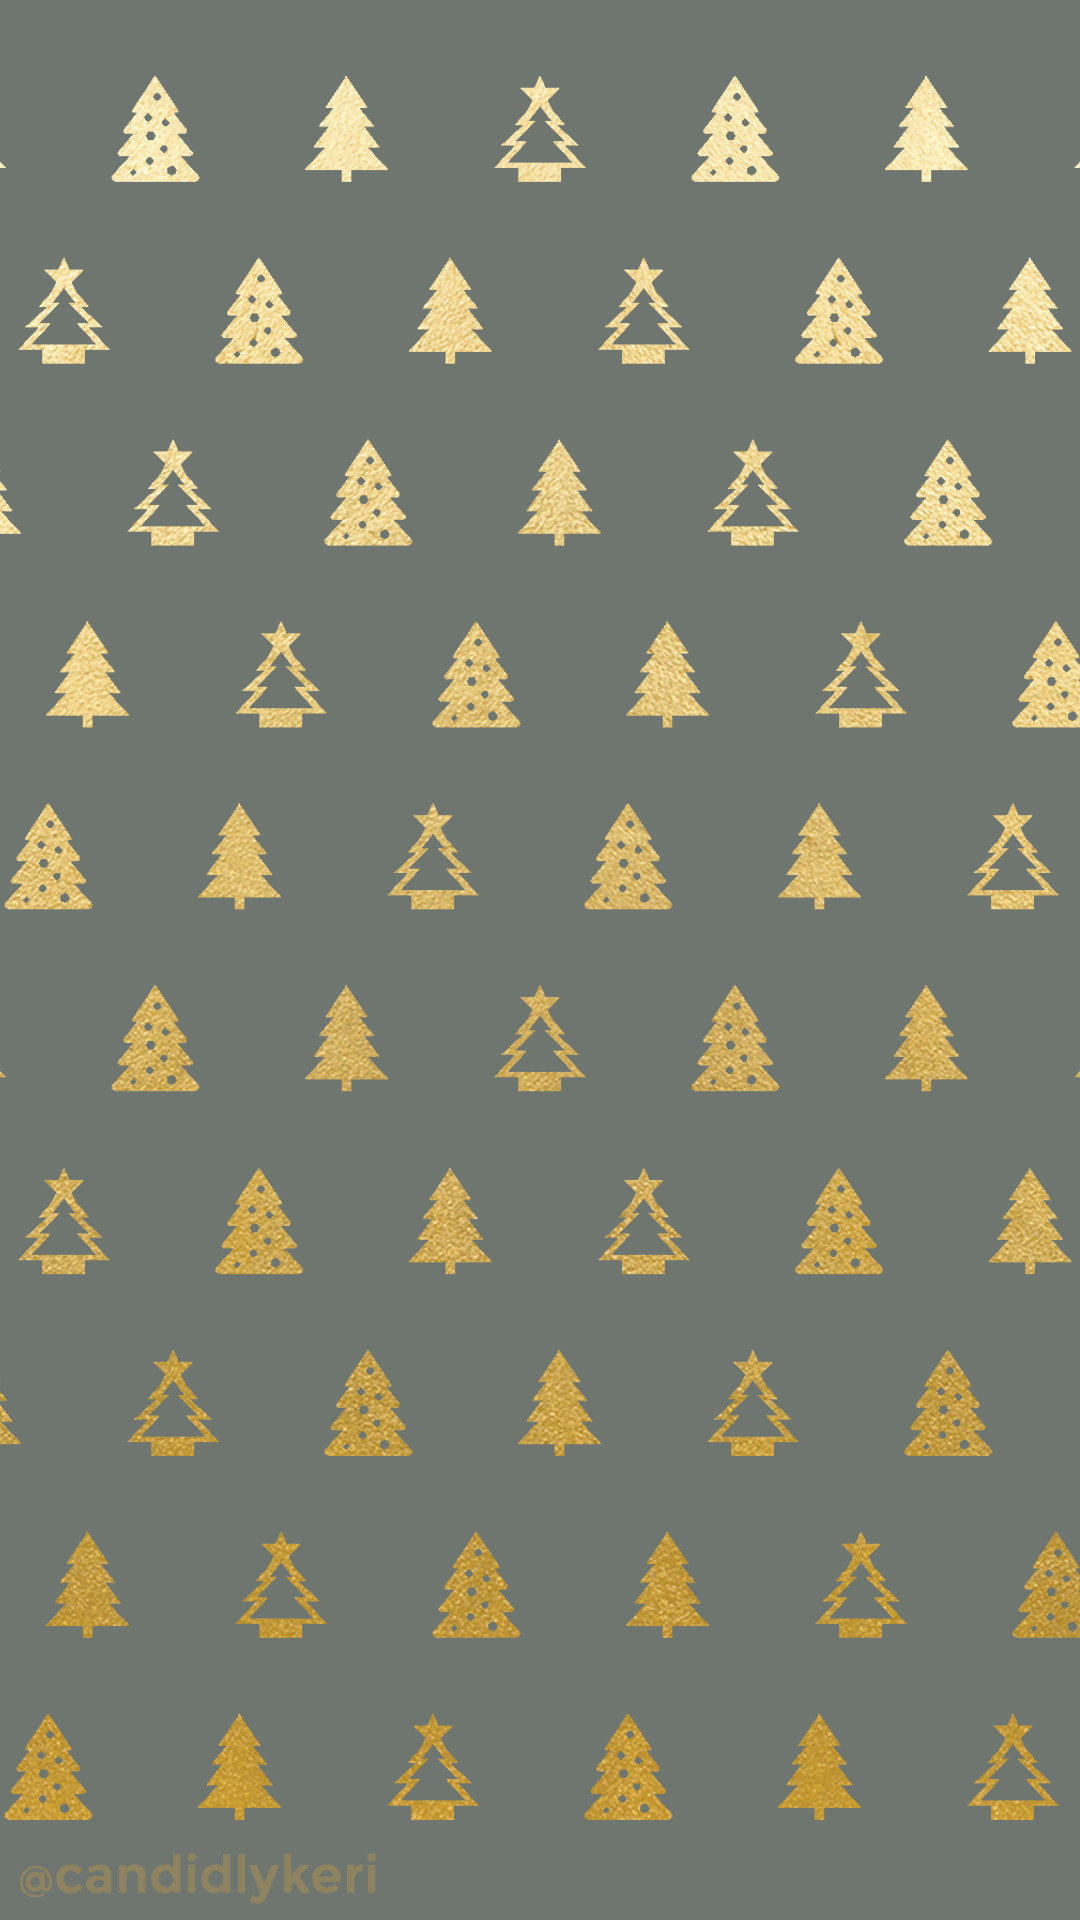 Christmas tree gold foil green background wallpaper you can download for  free on the blog!